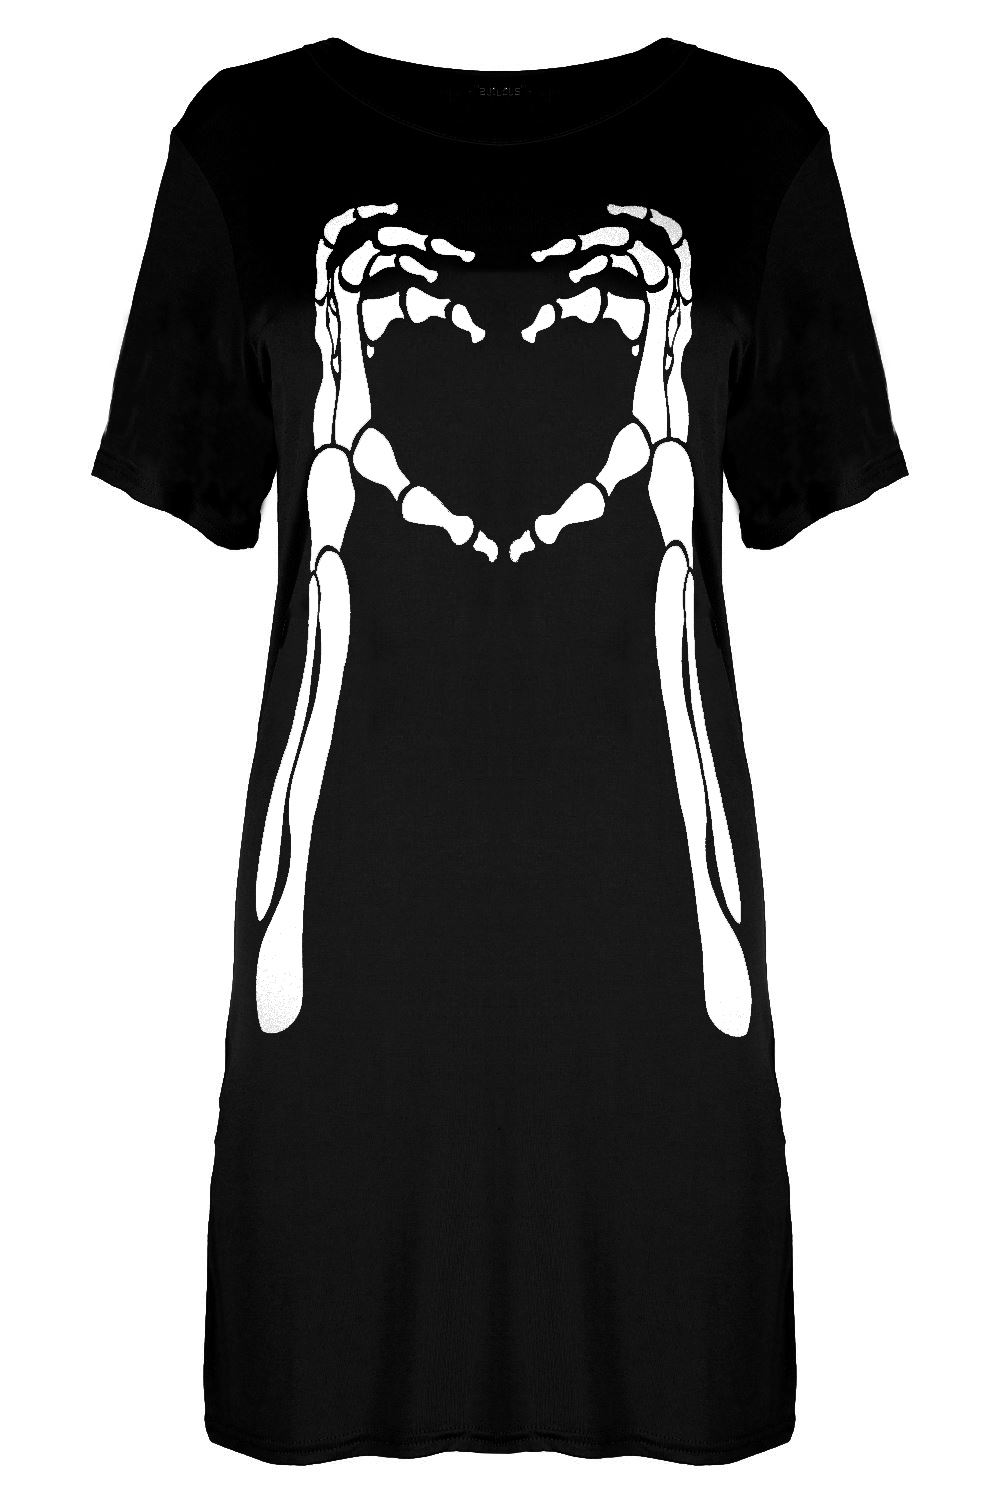 1a945054e1c1 Women Ladies Skull Printed Round Neck Oversized Halloween Loose Fit ...